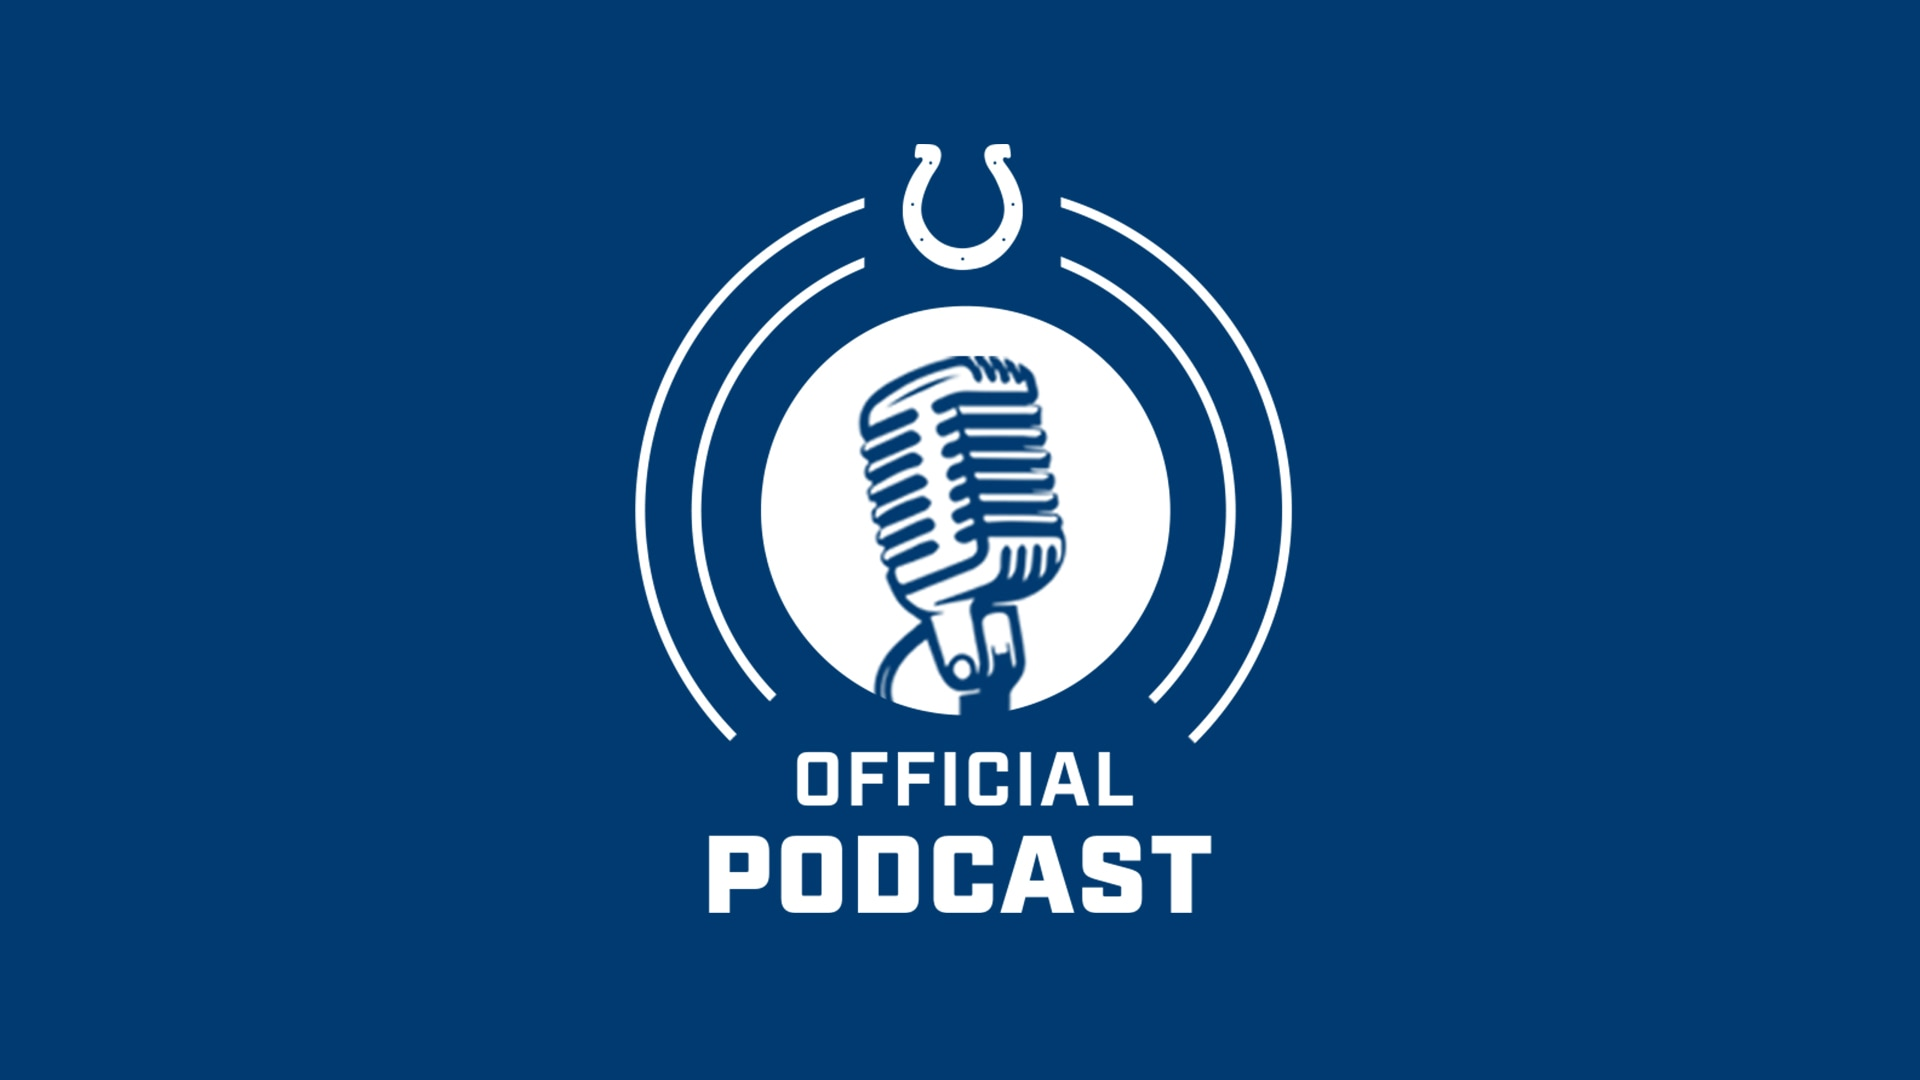 COLTS OFFICIAL PODCAST